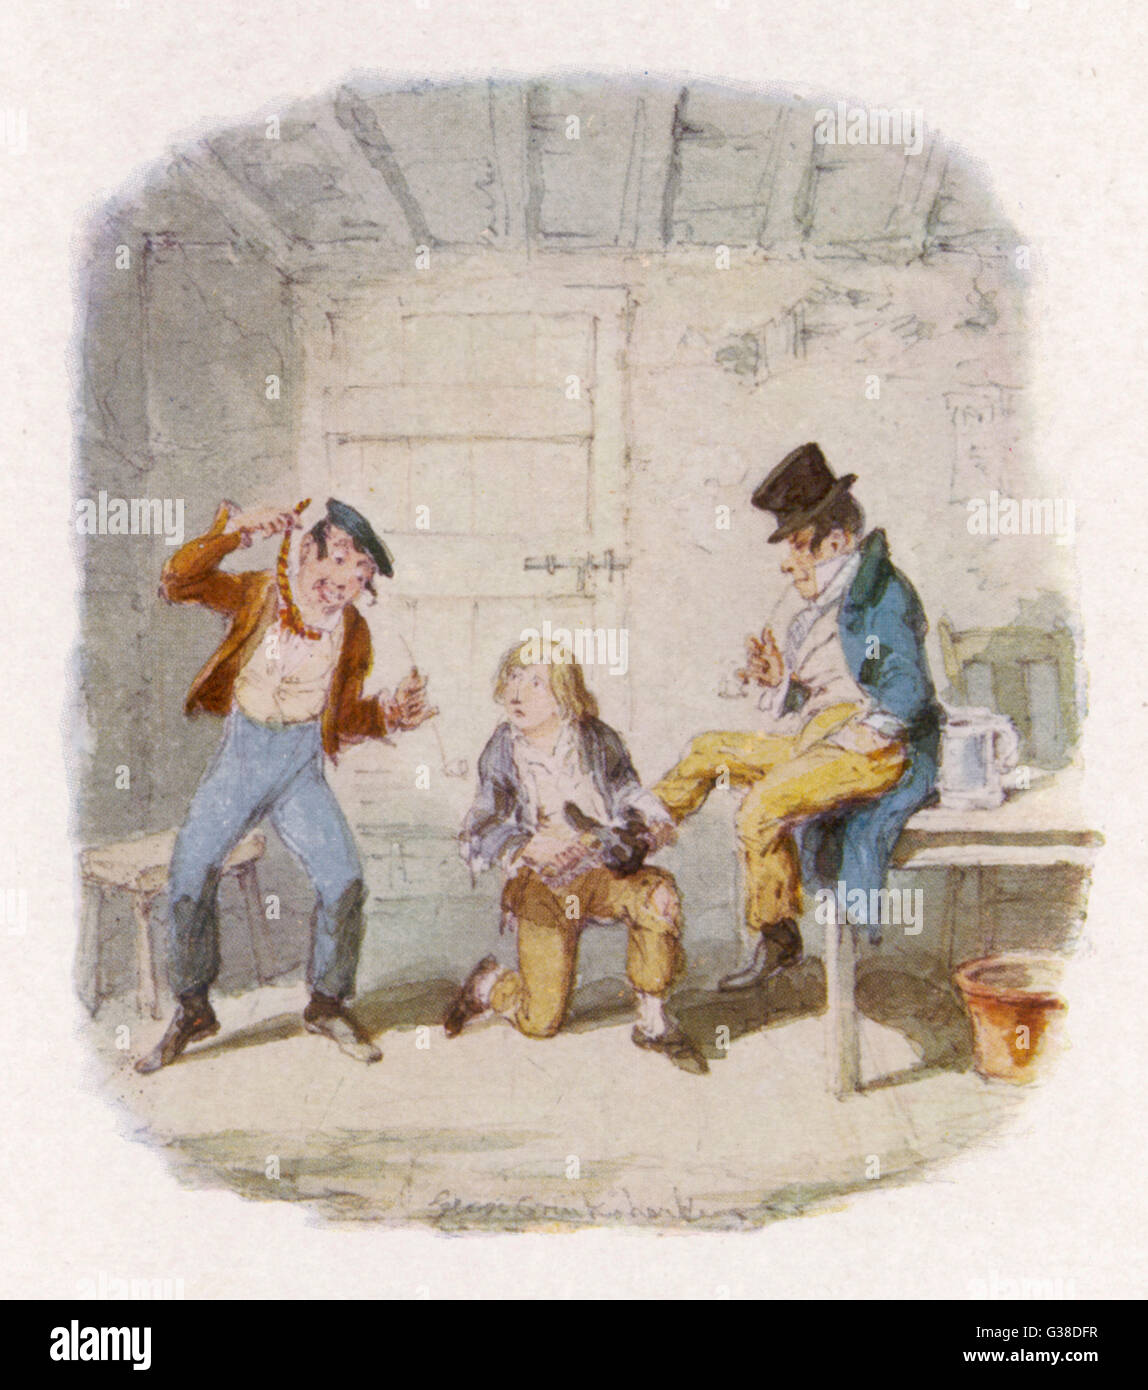 The Artful Dodger and an  accomplice teach Oliver how to  pickpocket.        Date: First published: 1836-37 - Stock Image